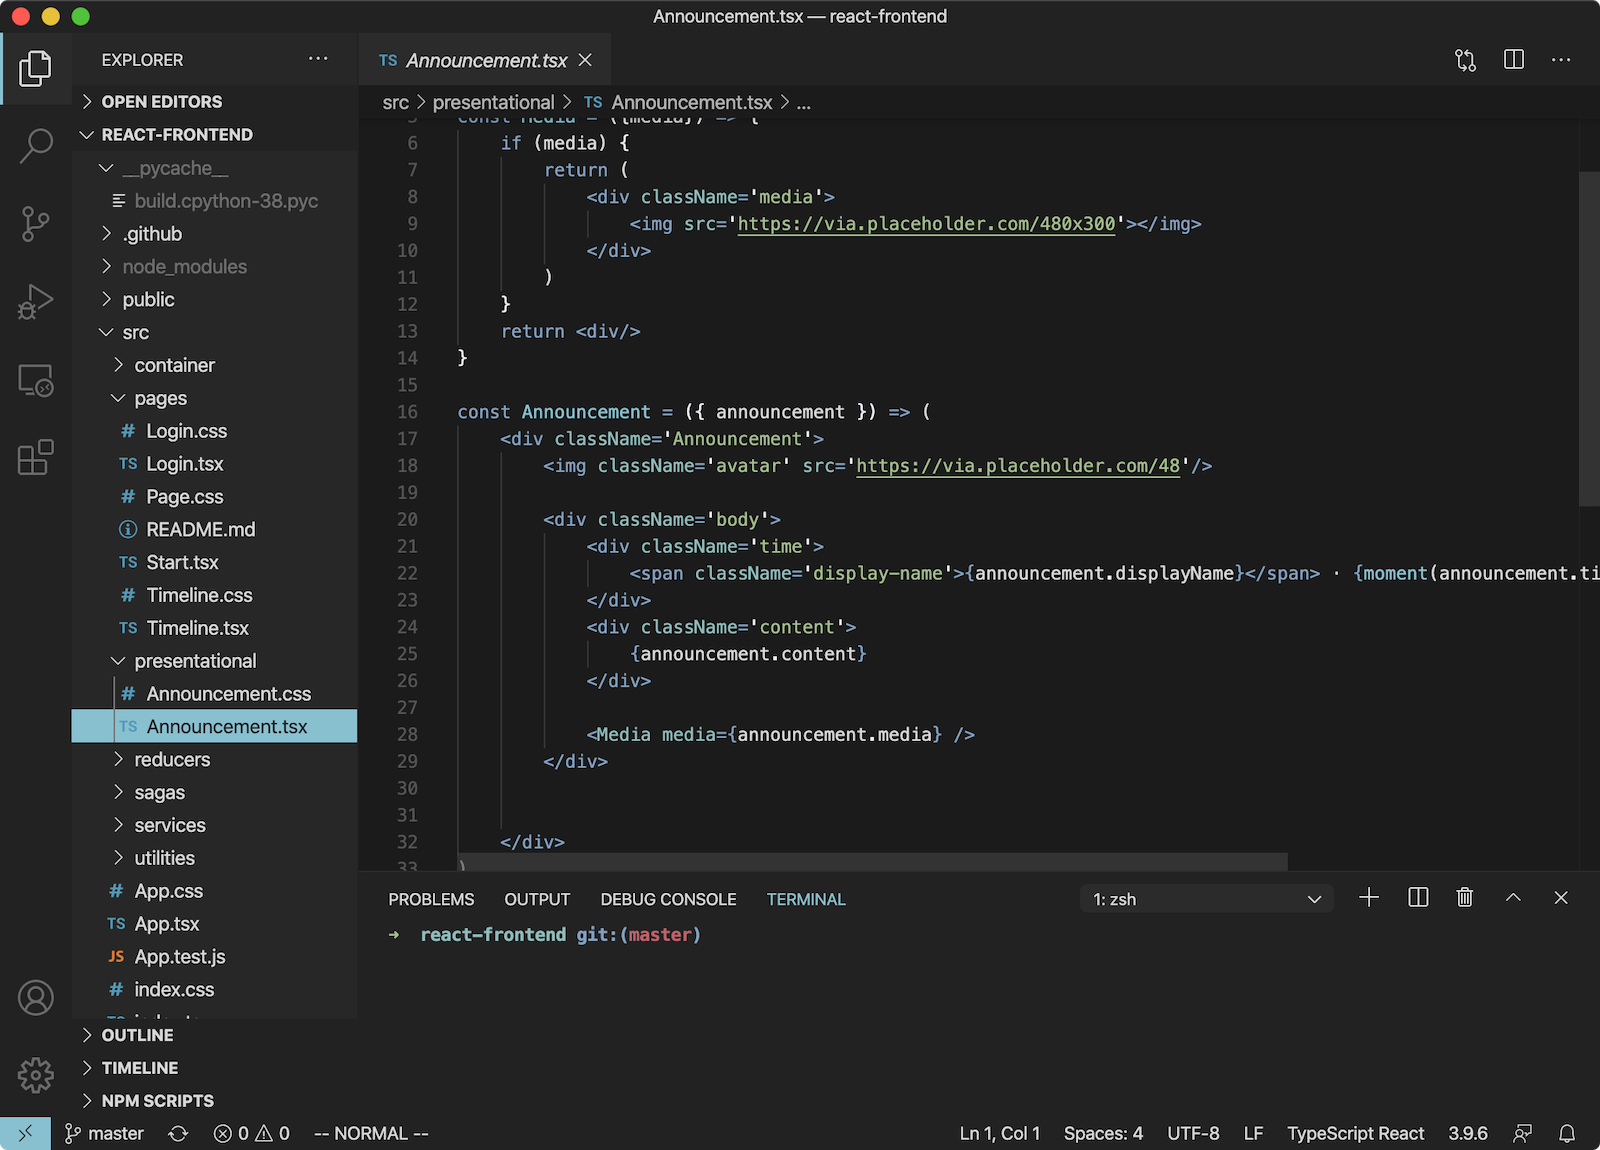 Screenshot of the nord native theme applied to visual studio code